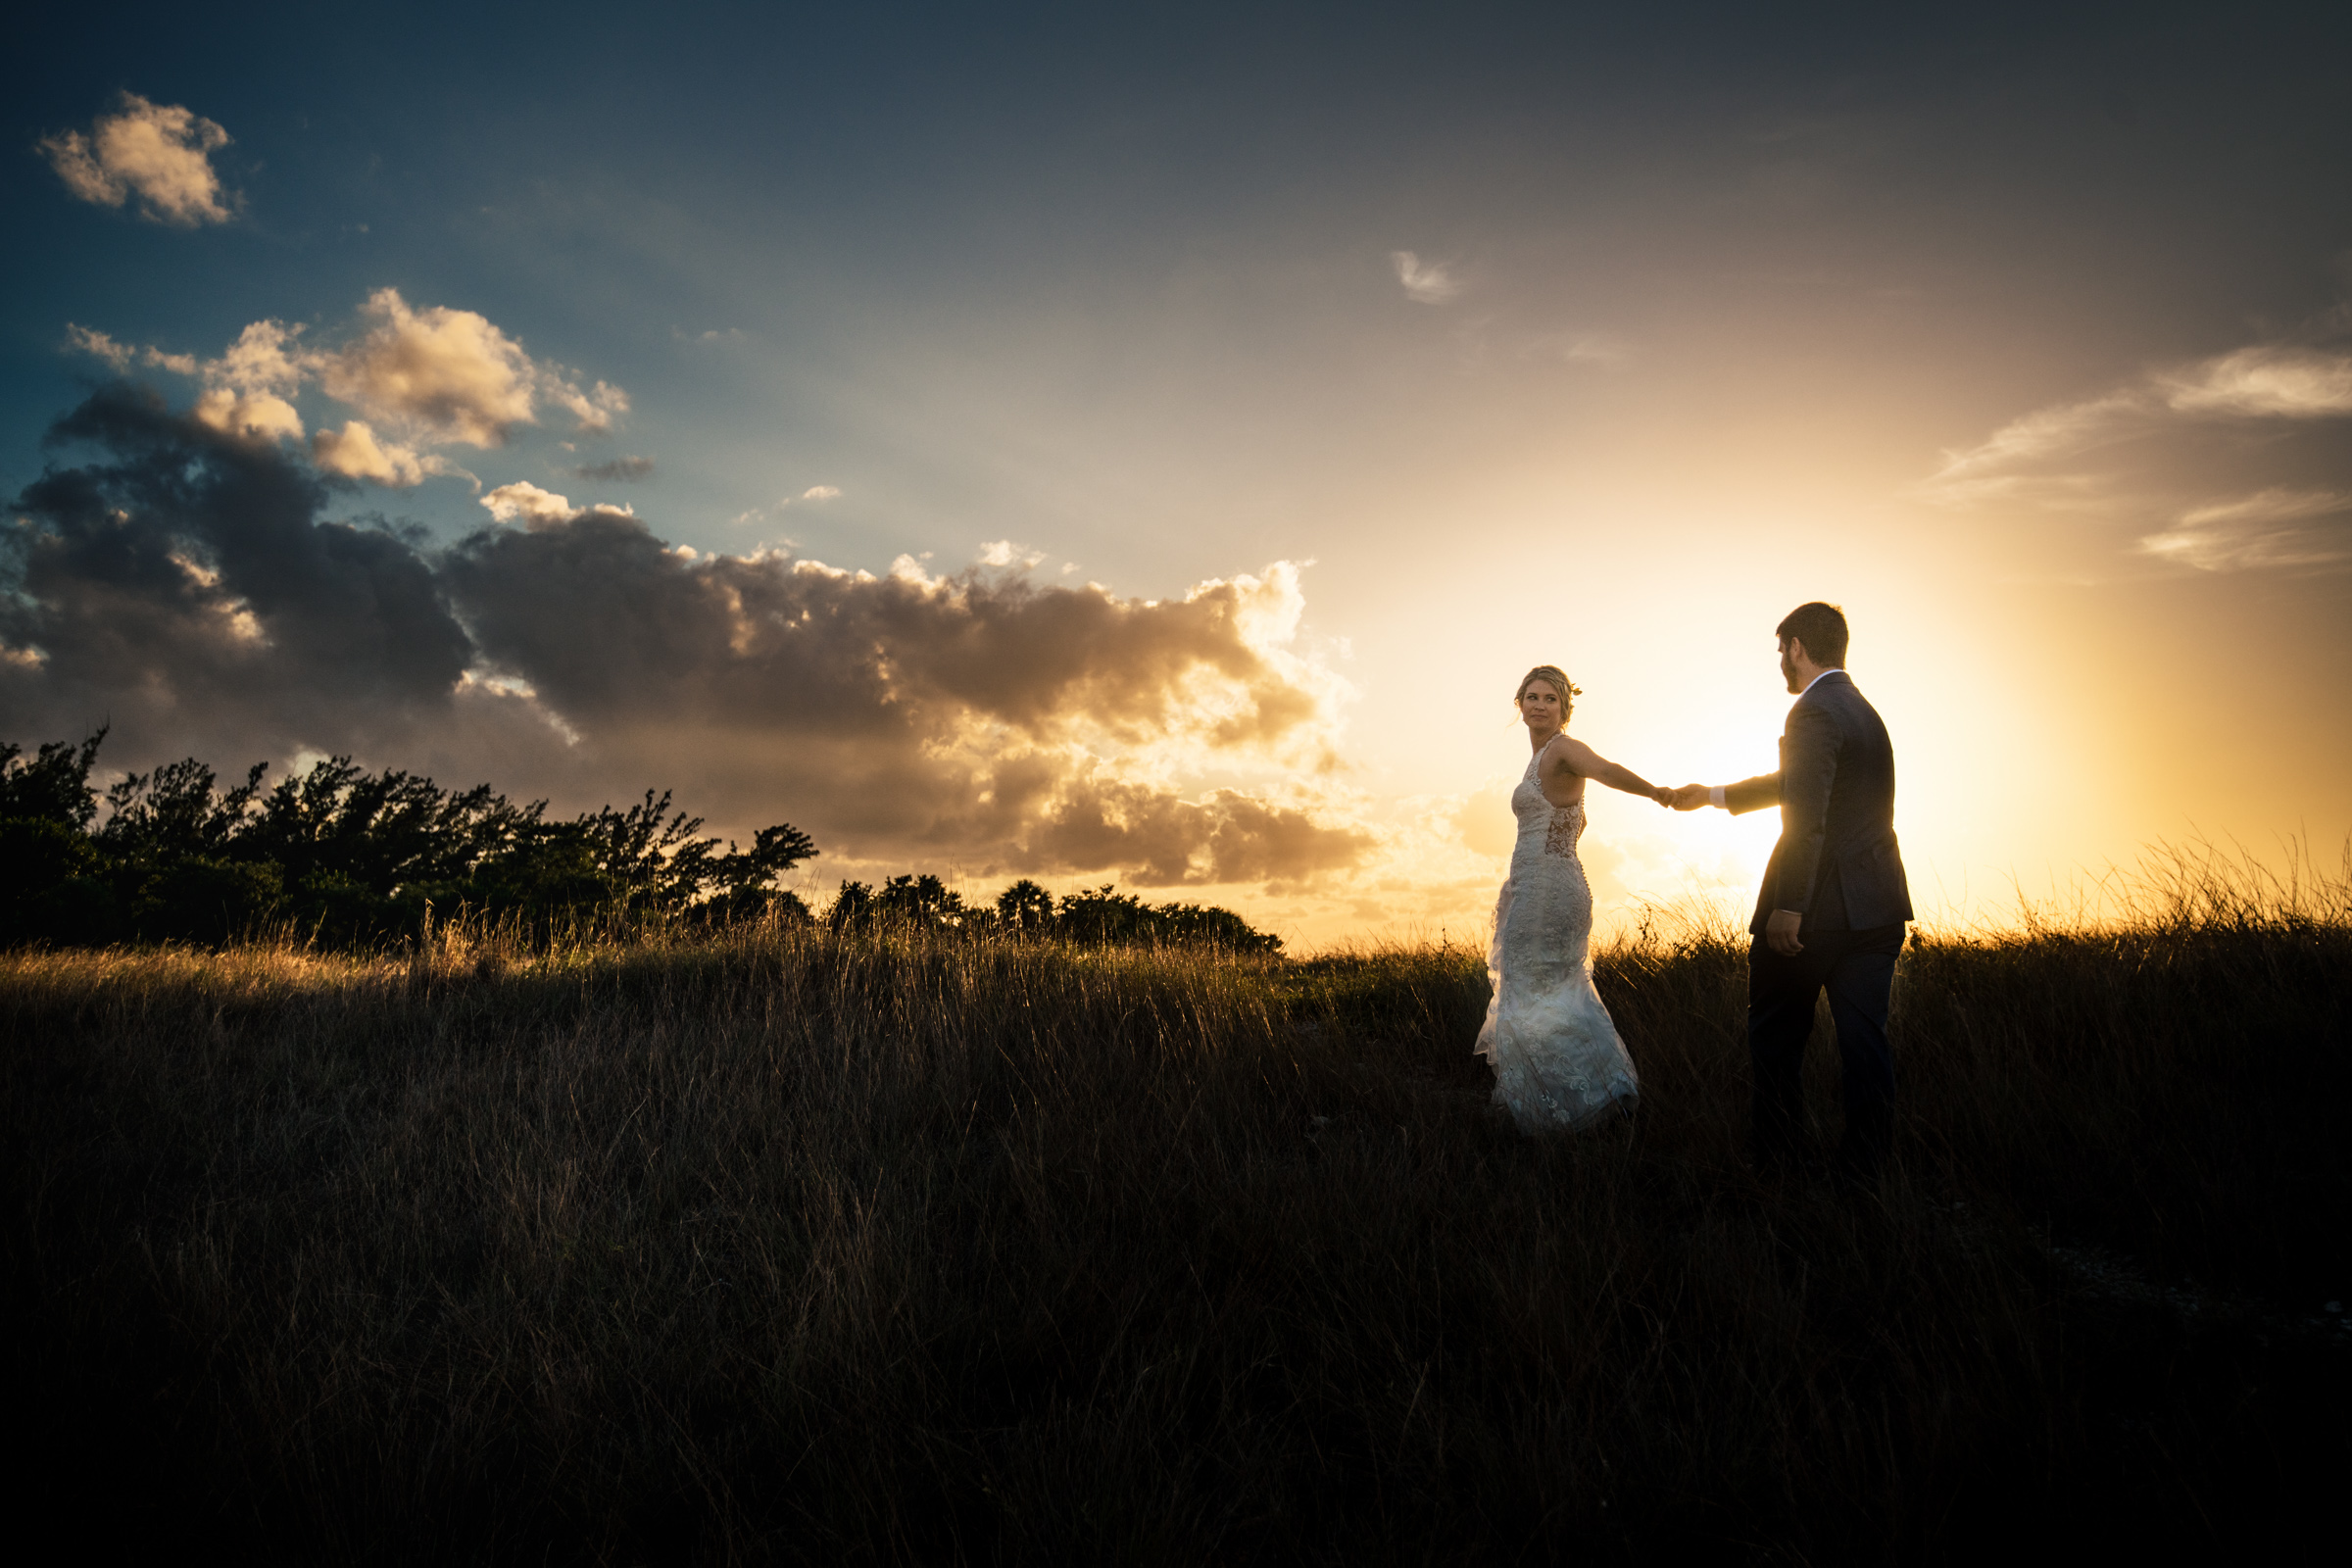 Bride leads groom across field during golden sunset  - photo by Michael Freas Photography - Connecticut